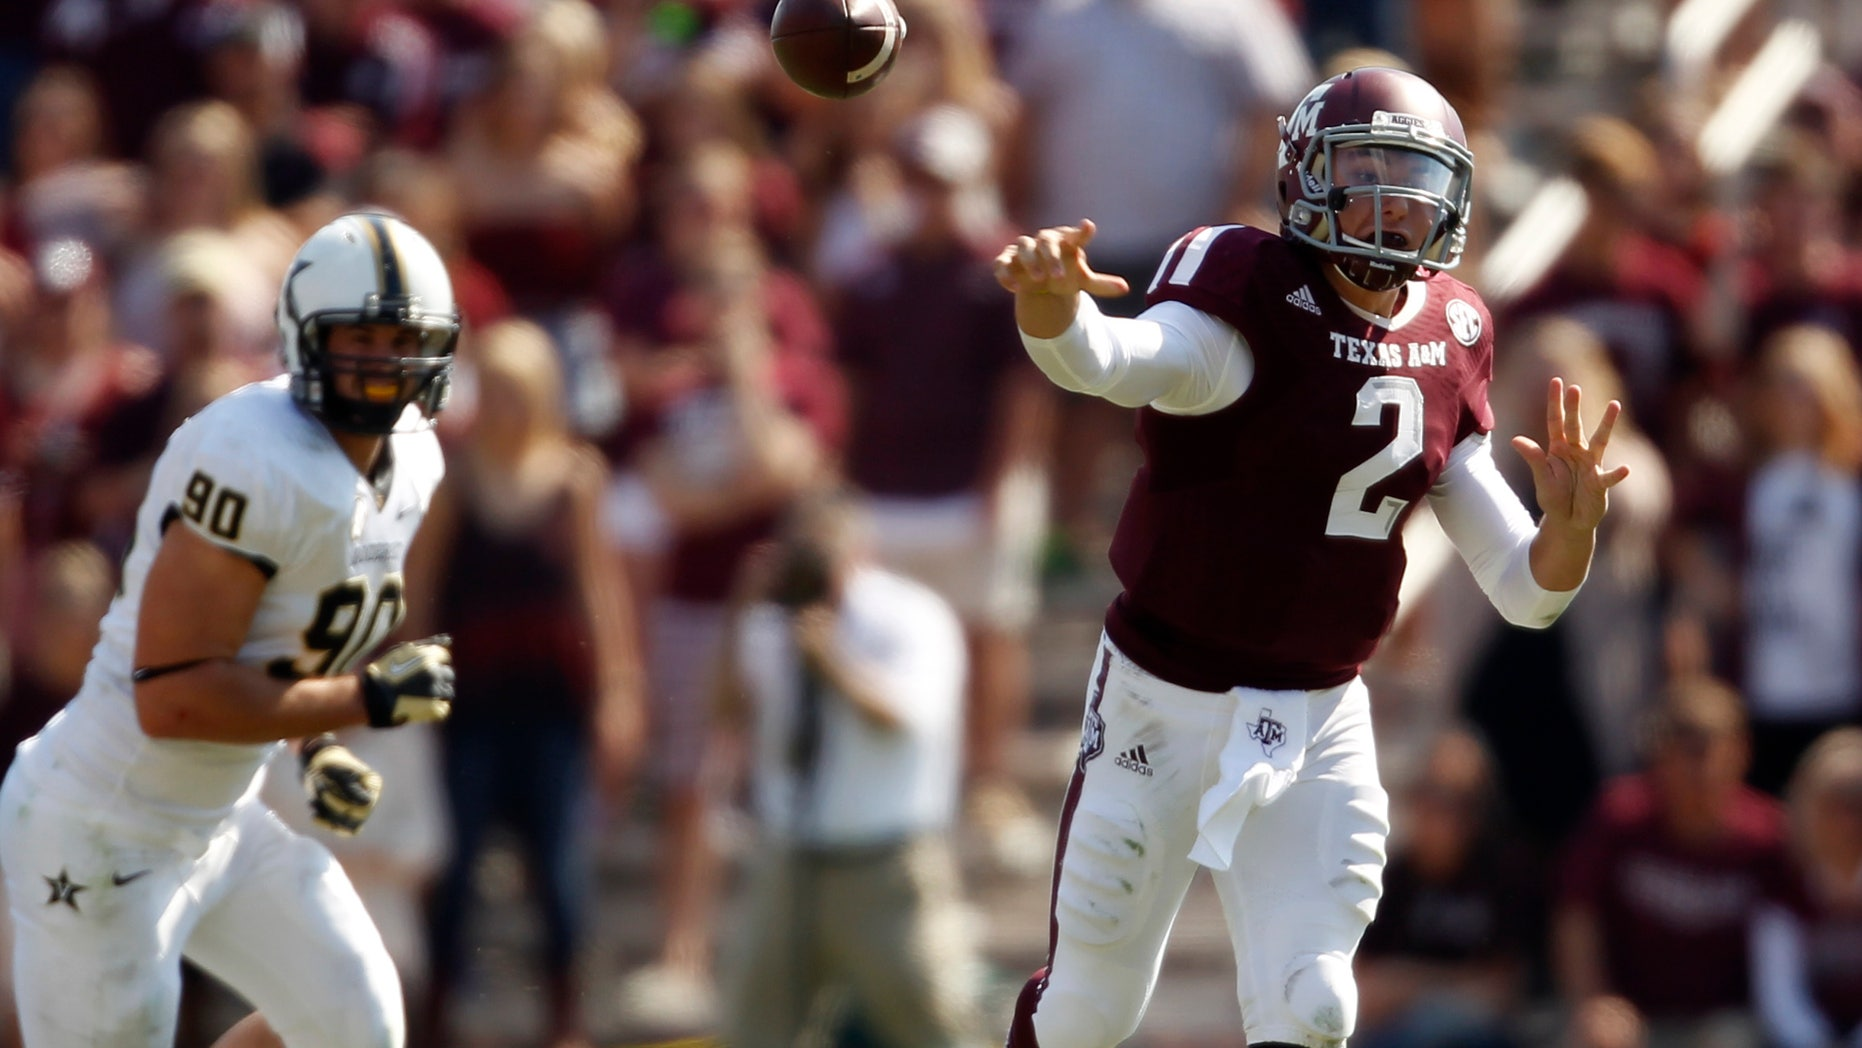 Texas A&M's Johnny Manziel (2) throws a pass during the first half of an NCAA college football game against Vanderbilt, Saturday, Oct. 26, 2013, in College Station, Texas. (AP Photo/Eric Christian Smith)